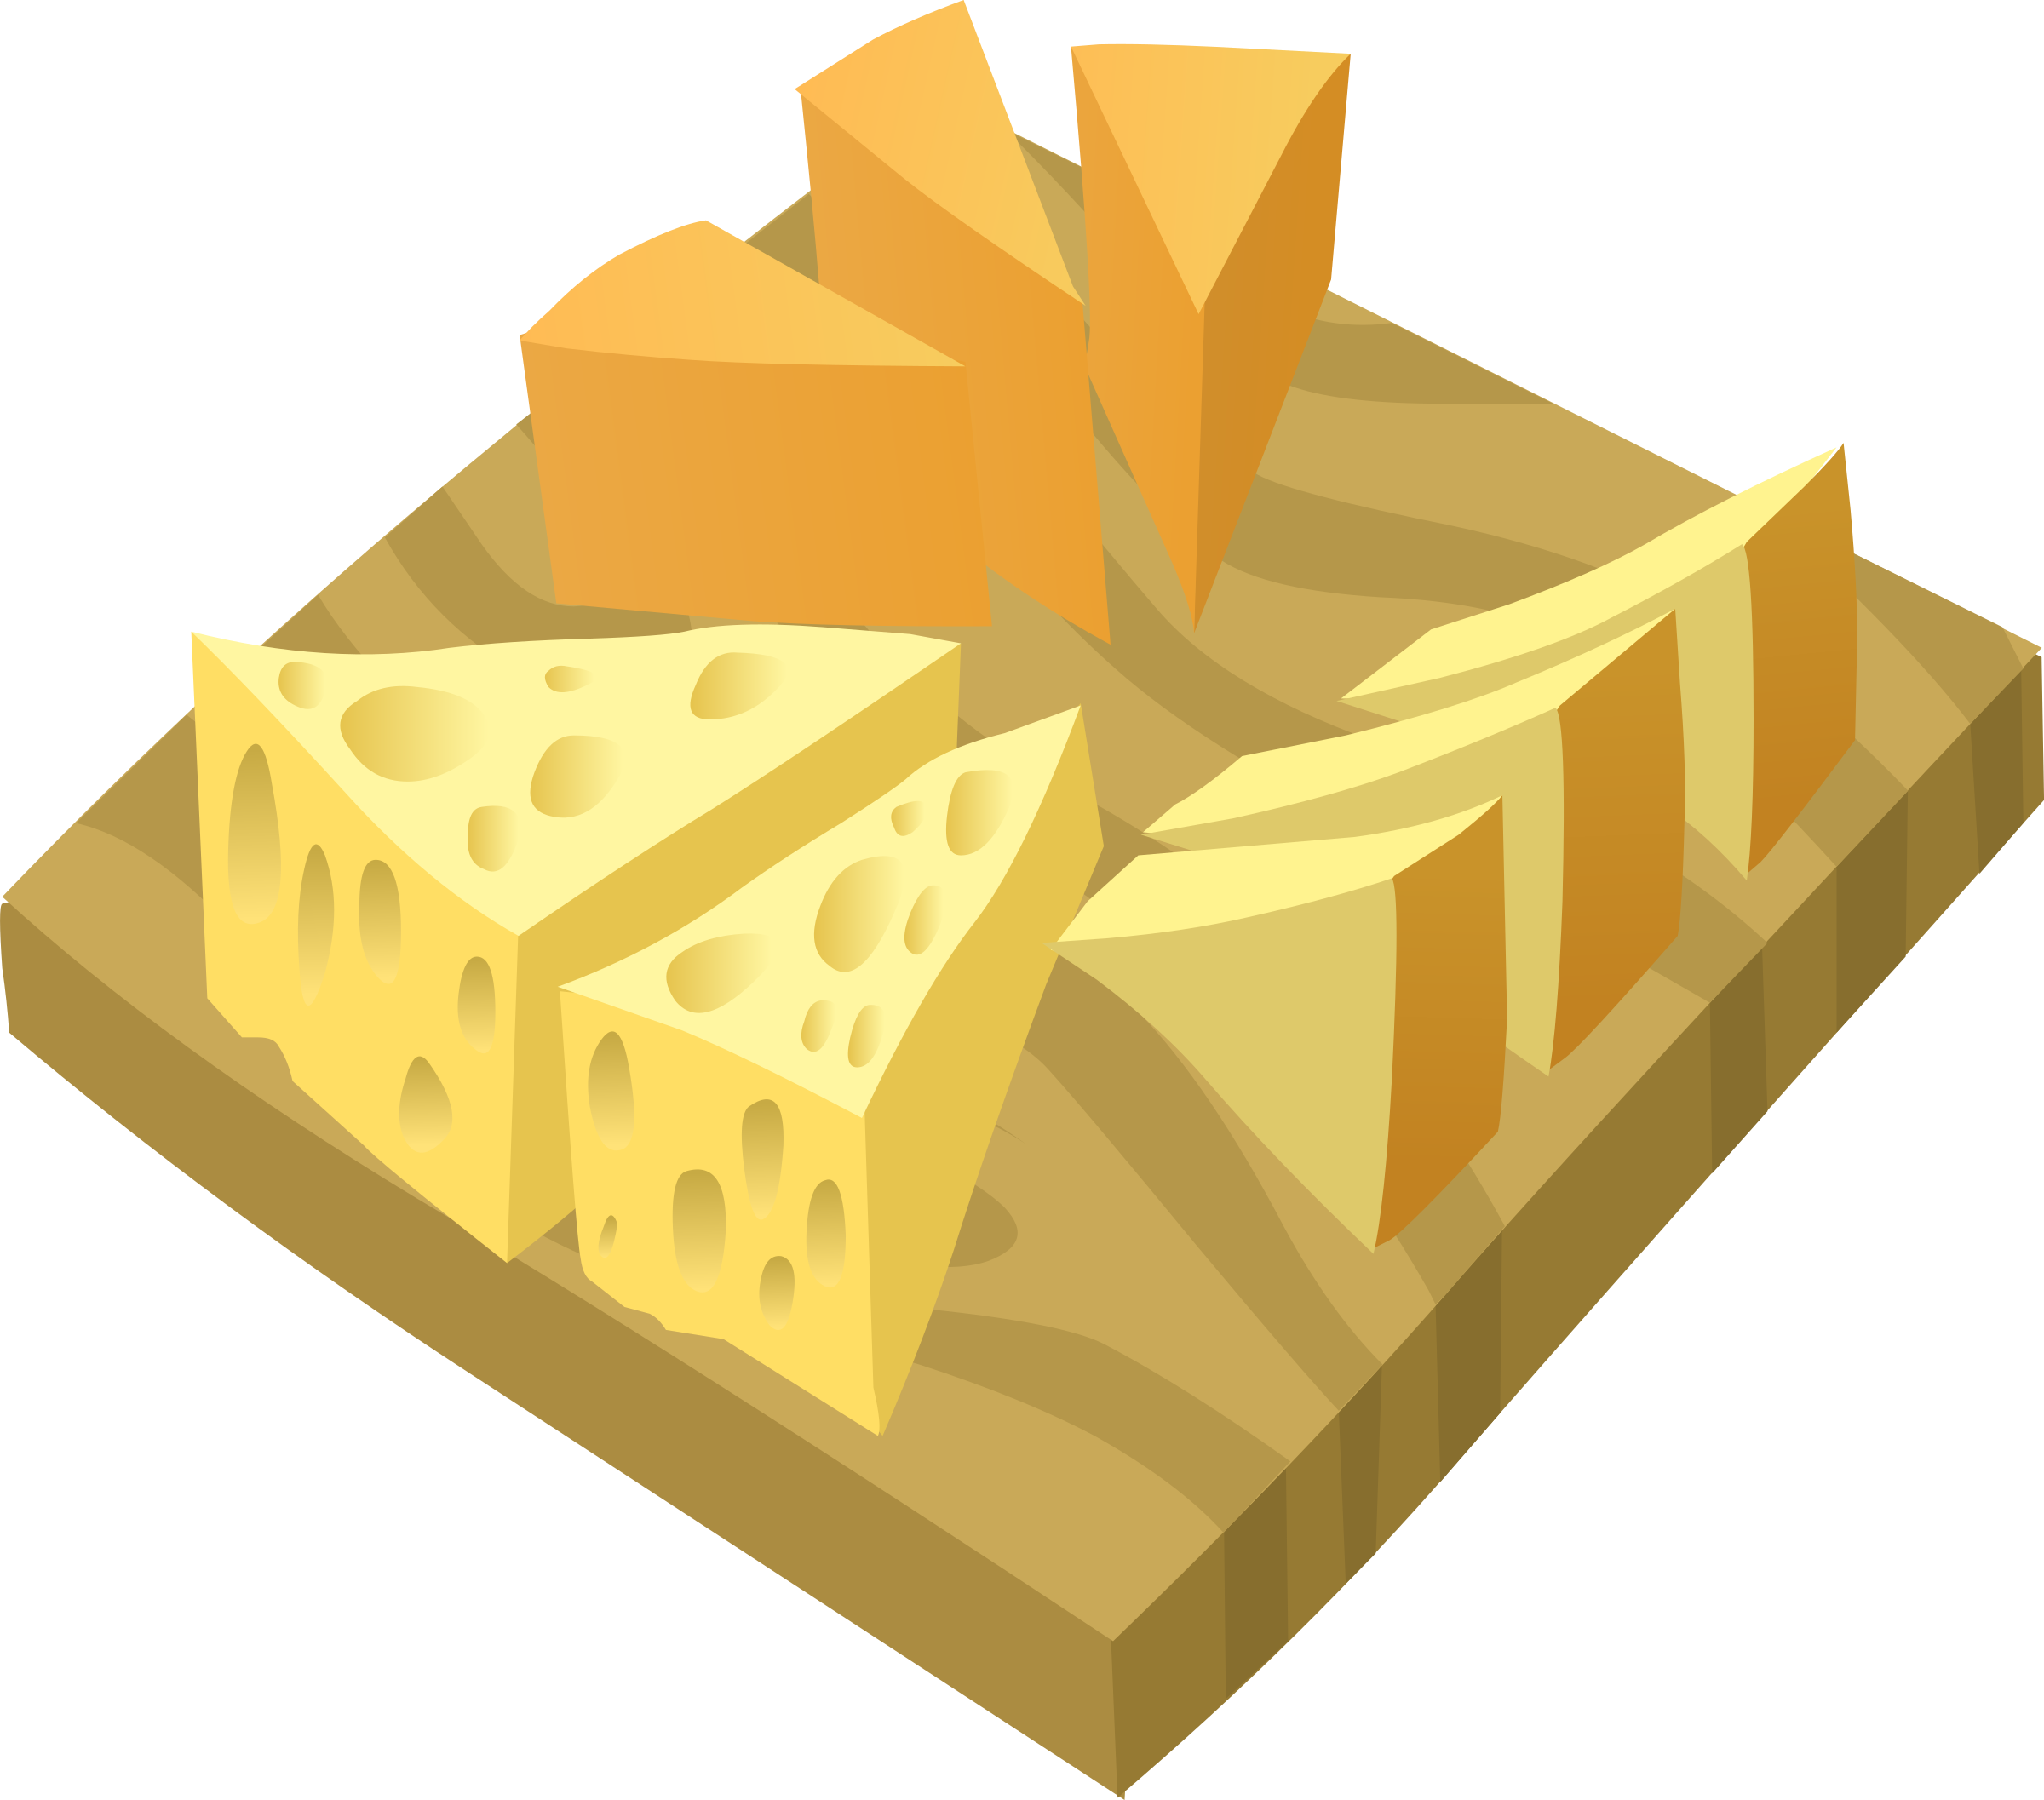 Food cheese icons png. Plate clipart stack plate